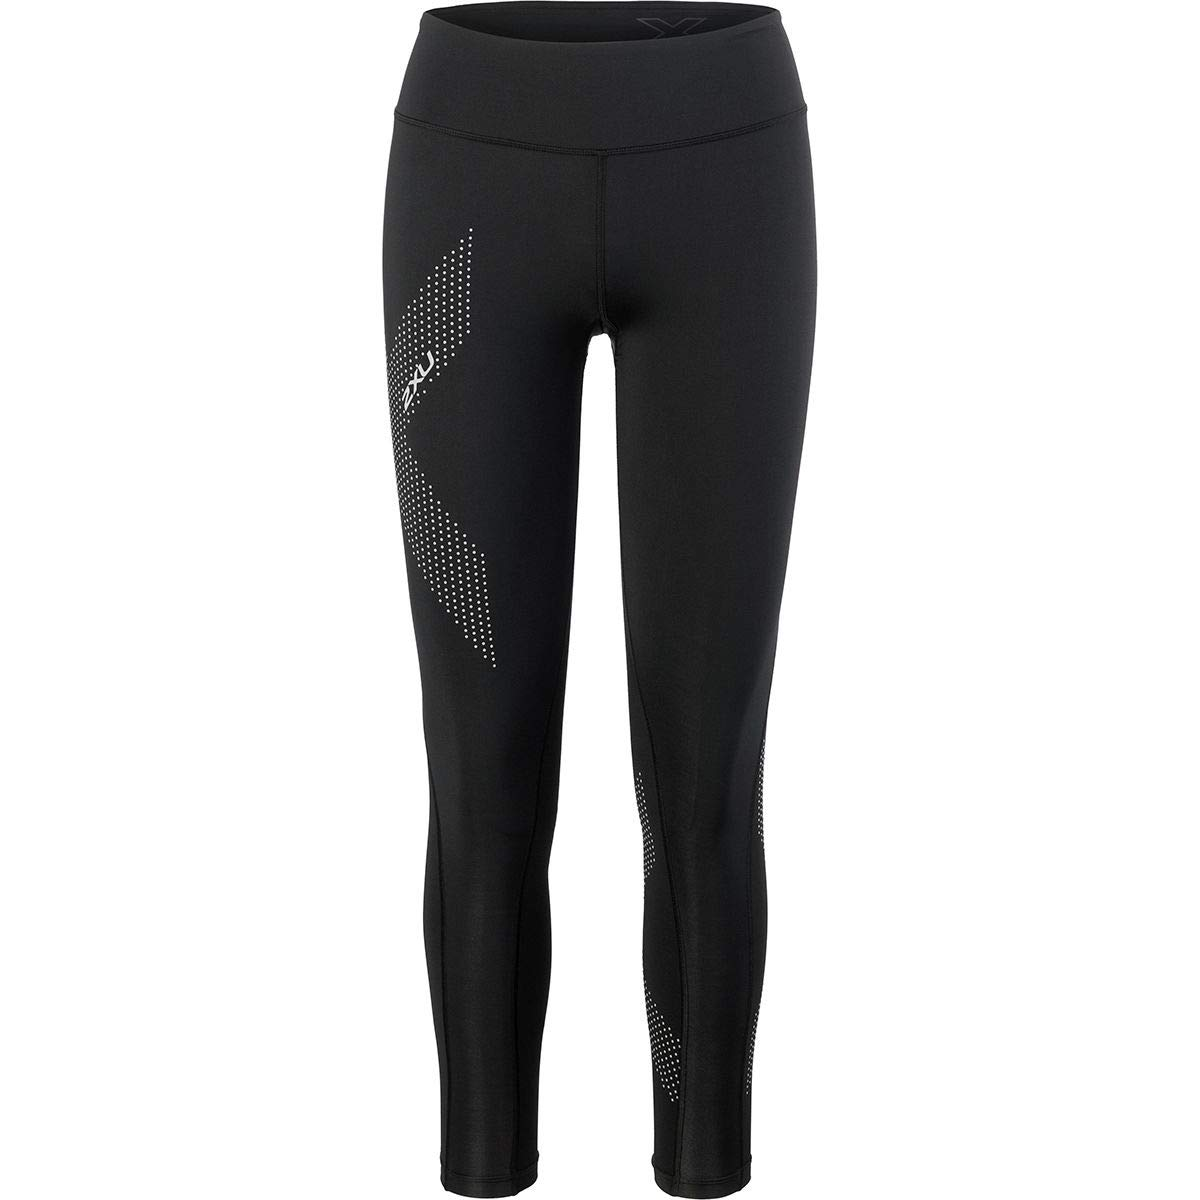 2XU Mid-Rise Compression Tights - Women's Black/Dotted Reflective Logo, XS